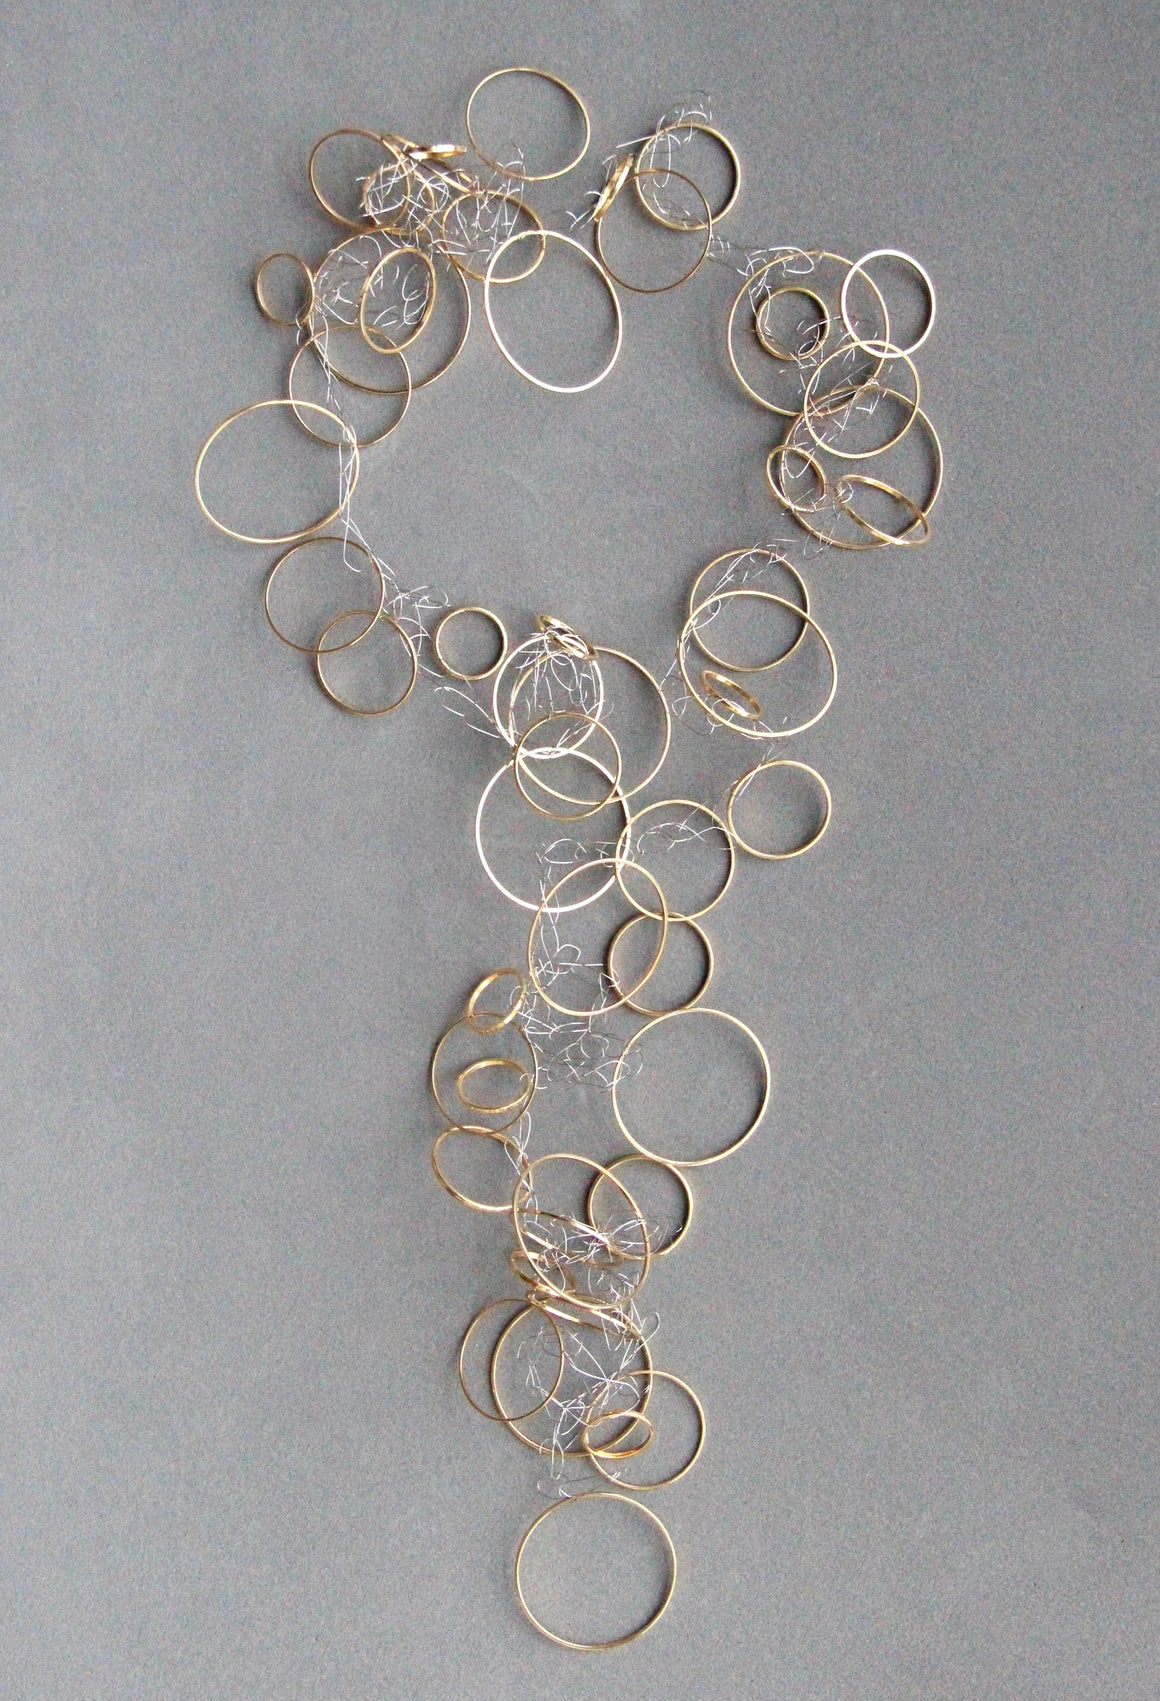 The Ethereal Tangle - Gold & Silver